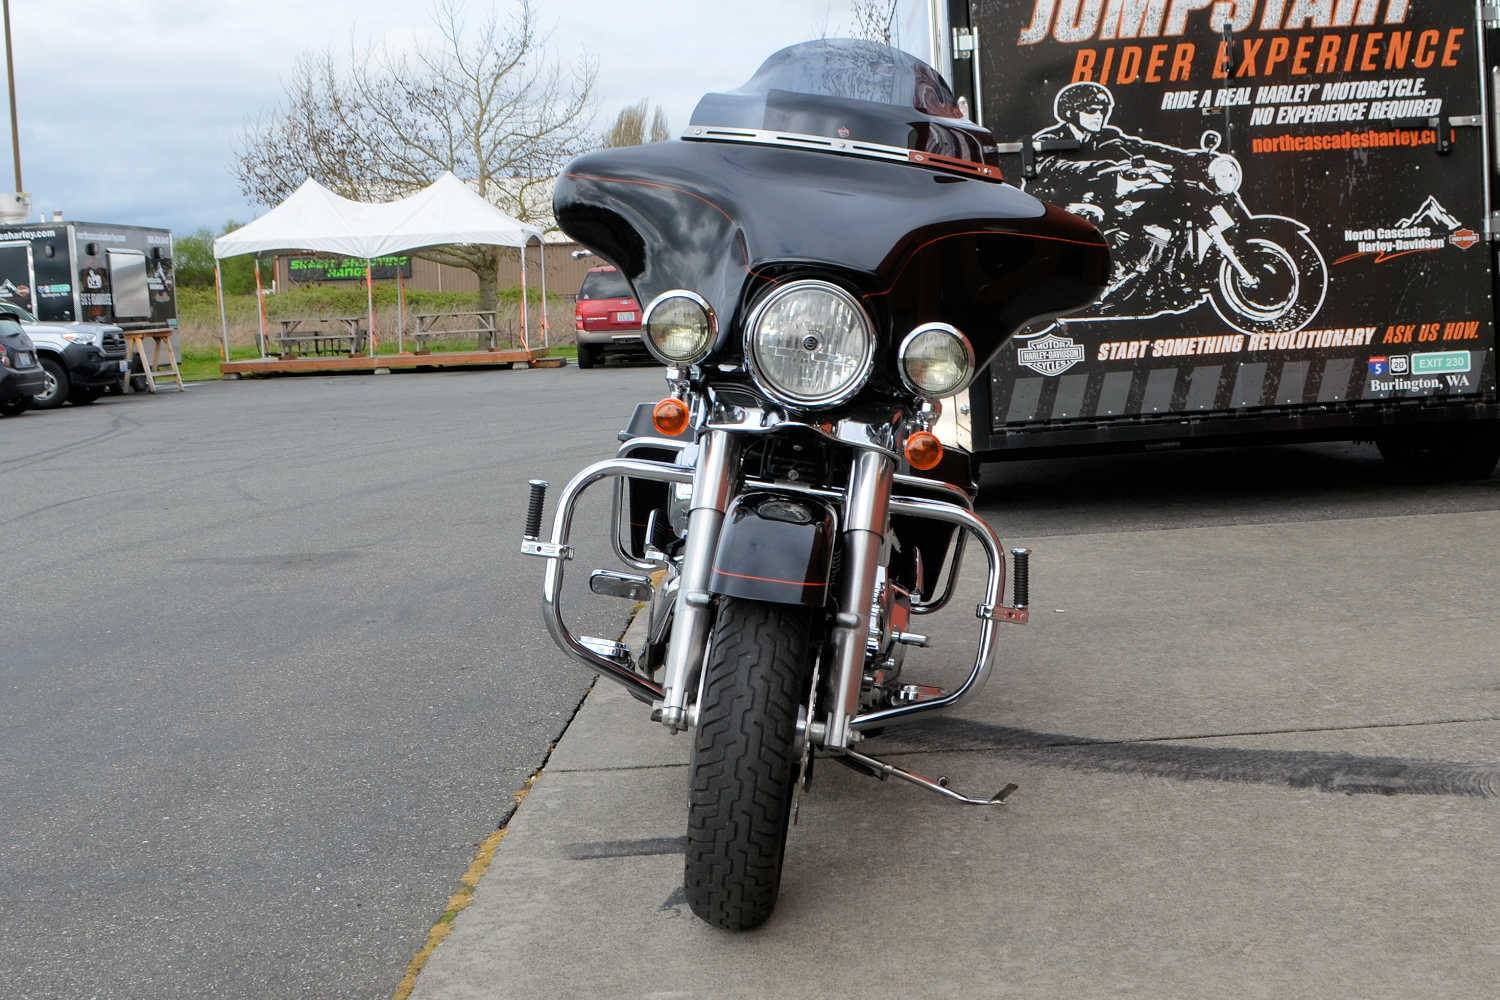 2007 Harley-Davidson Street Glide™ in Burlington, Washington - Photo 5